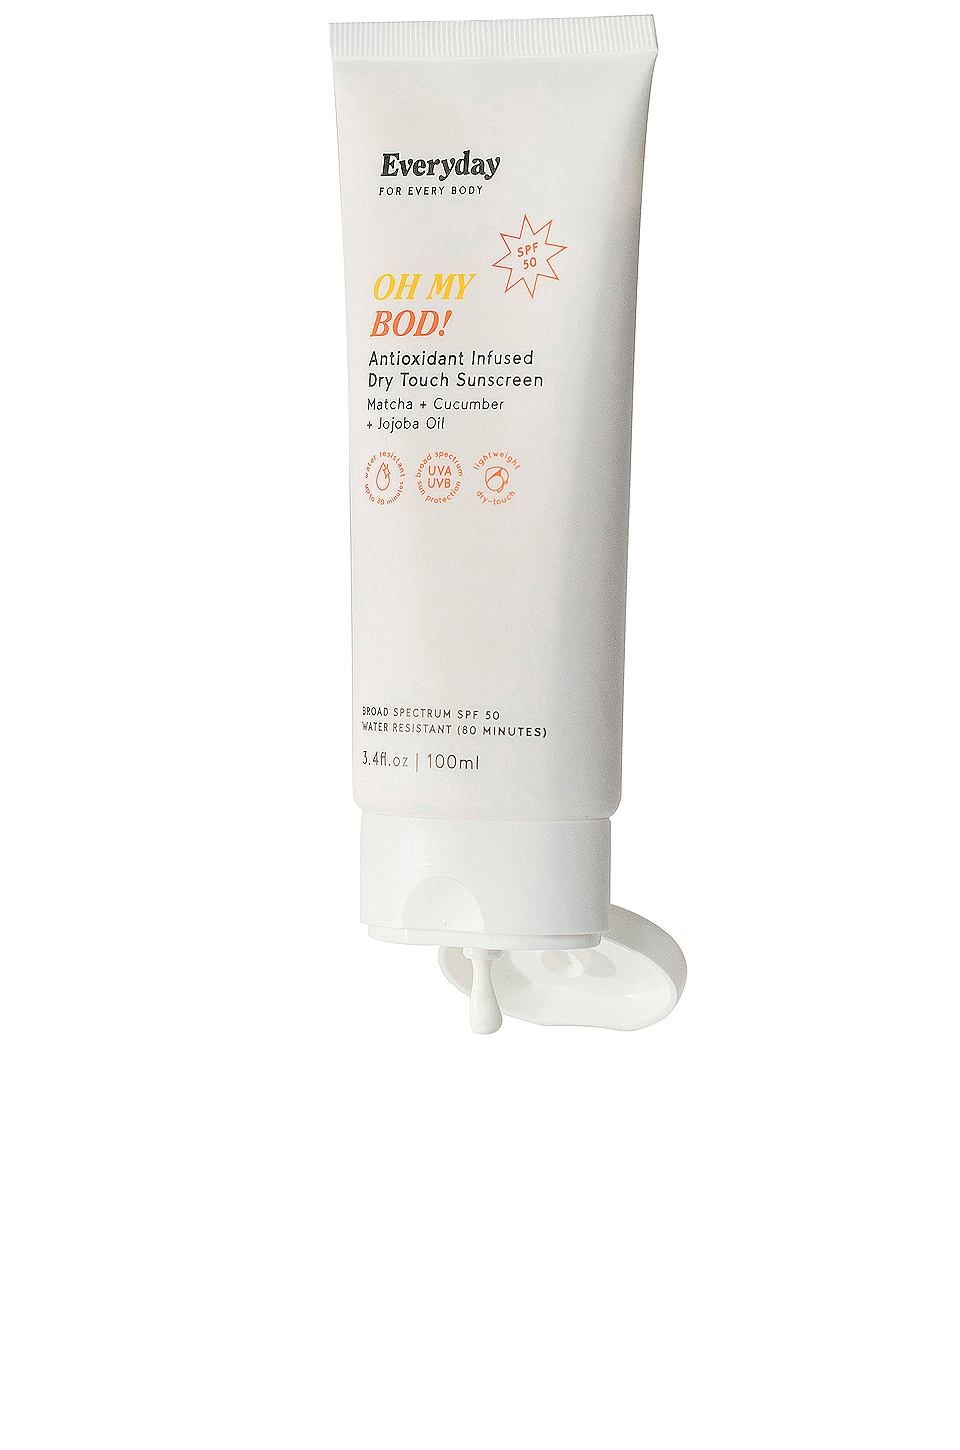 Everyday for Every Body OH MY BOD! Antioxidant Infused Dry Touch Sunscreen